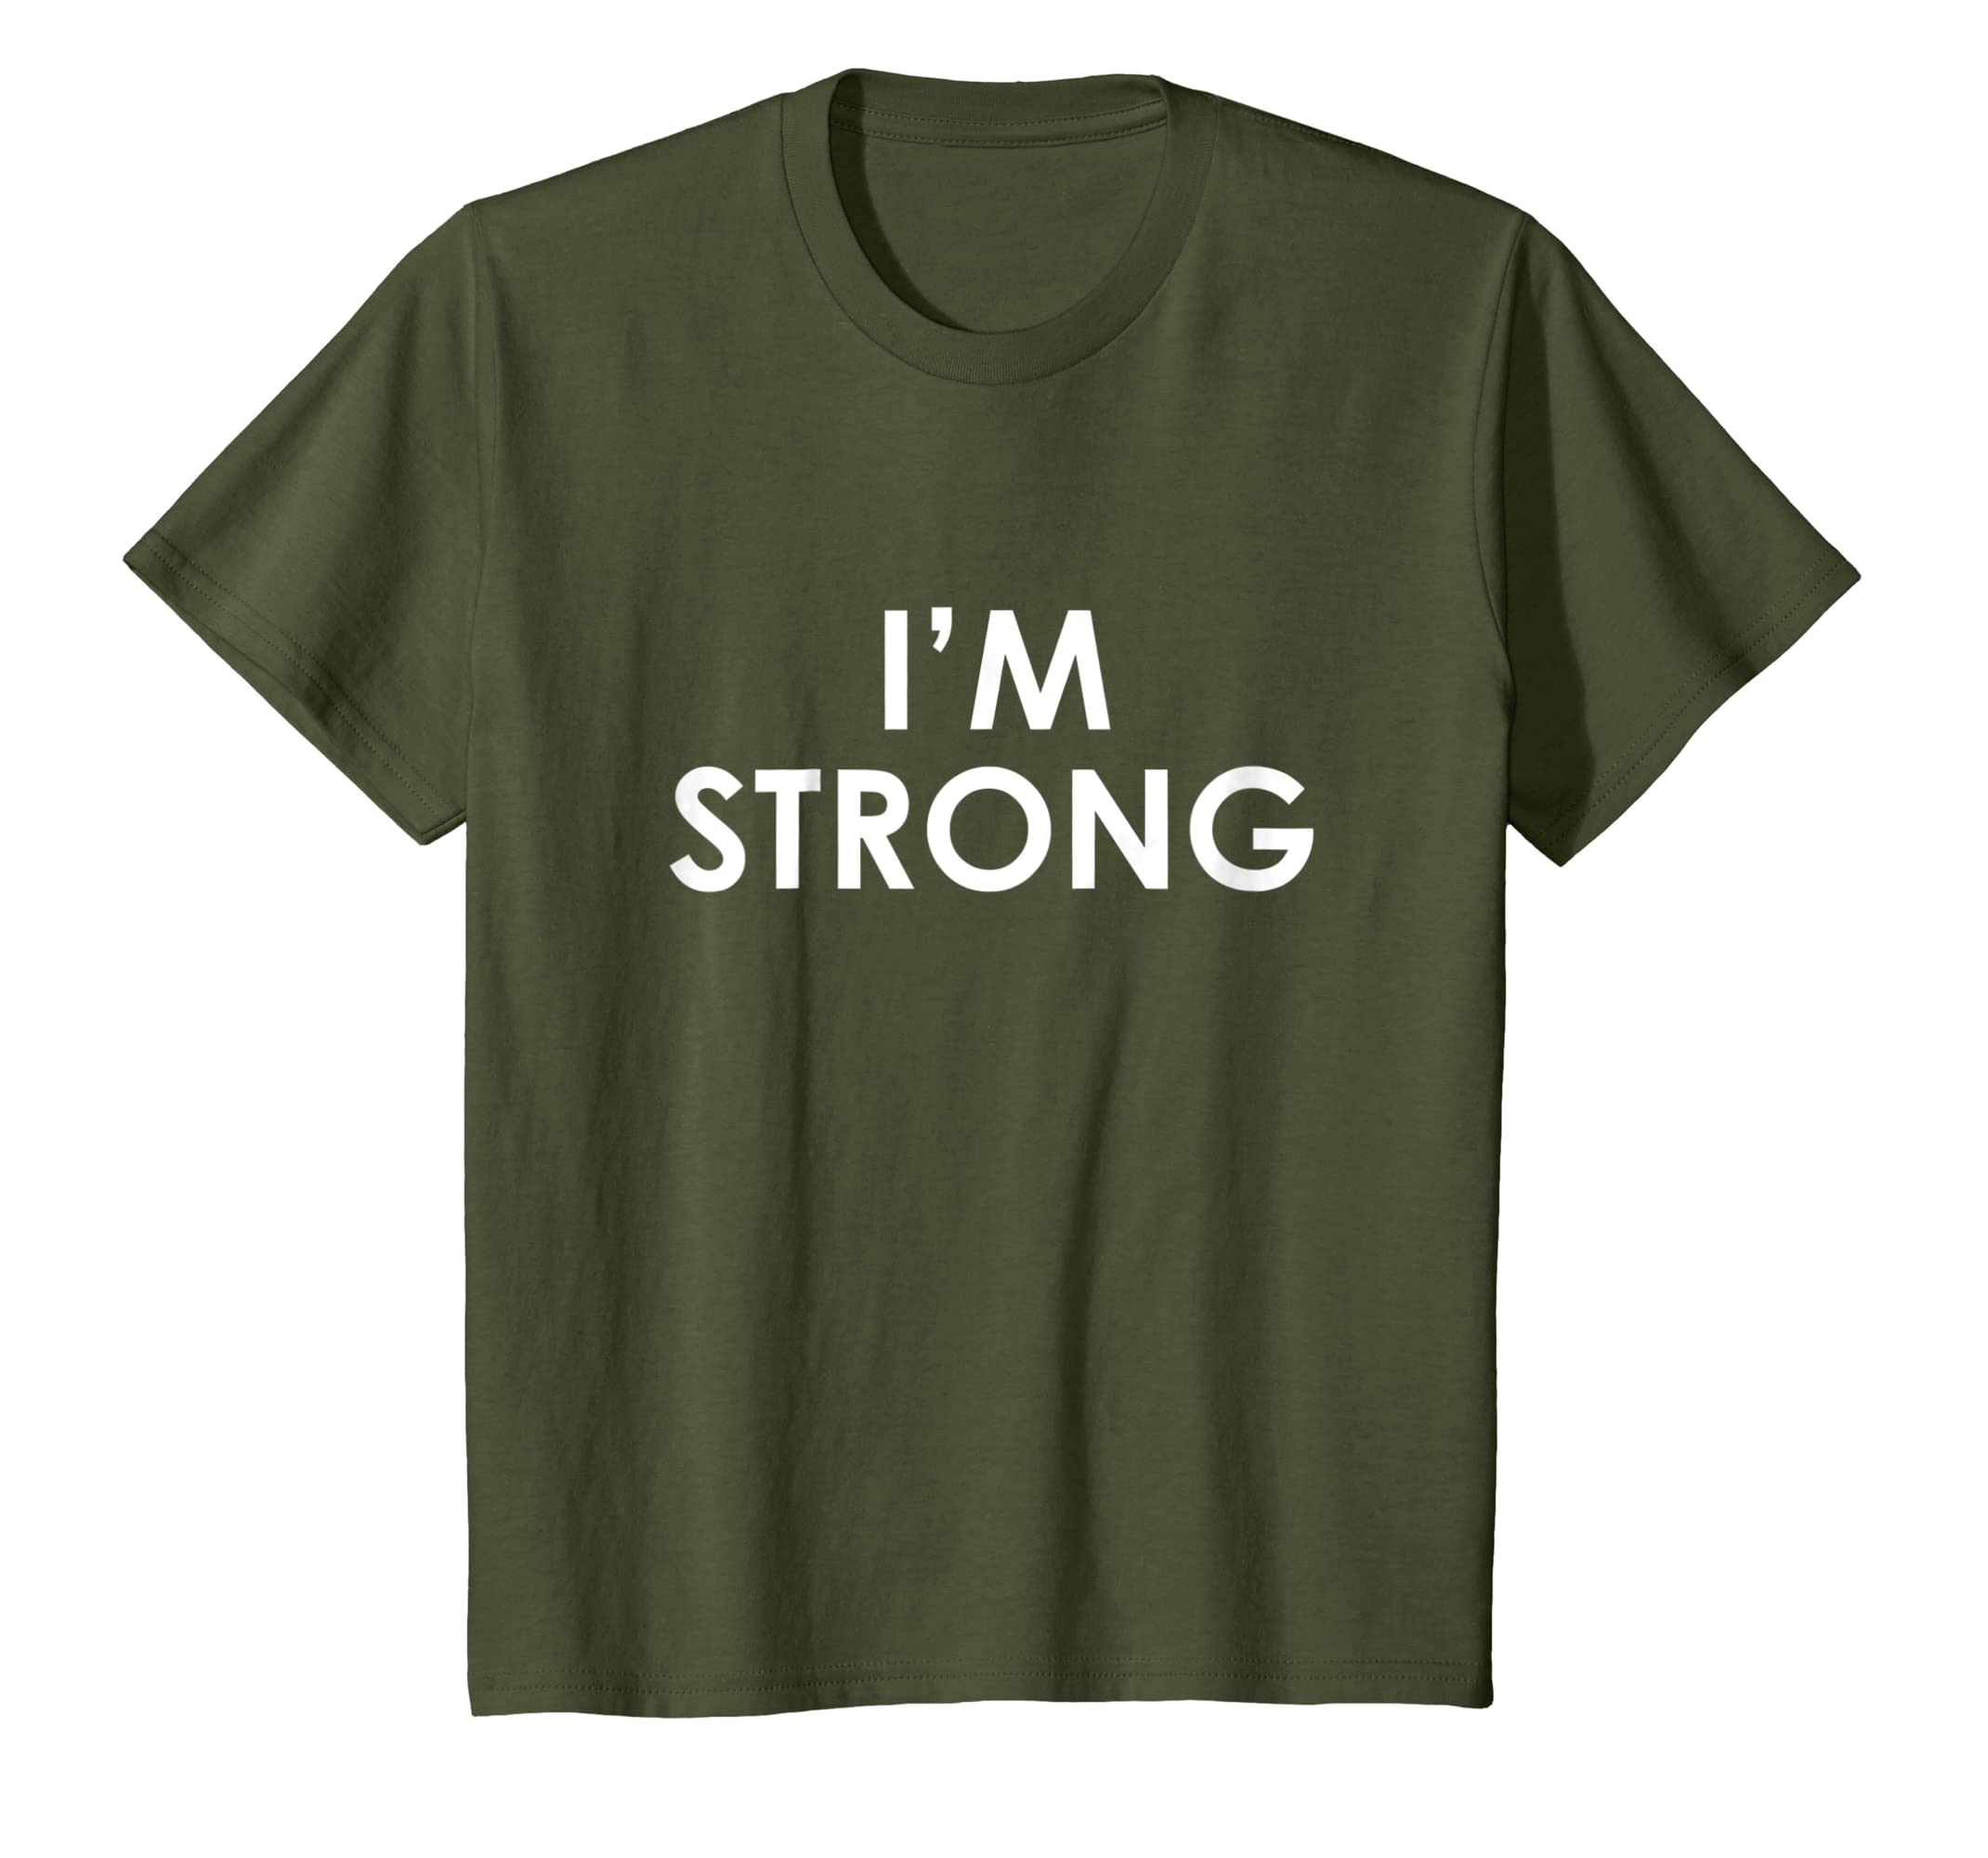 Amazon com: Gifts for Friend Going Through Chemo or Radiation Tshirt